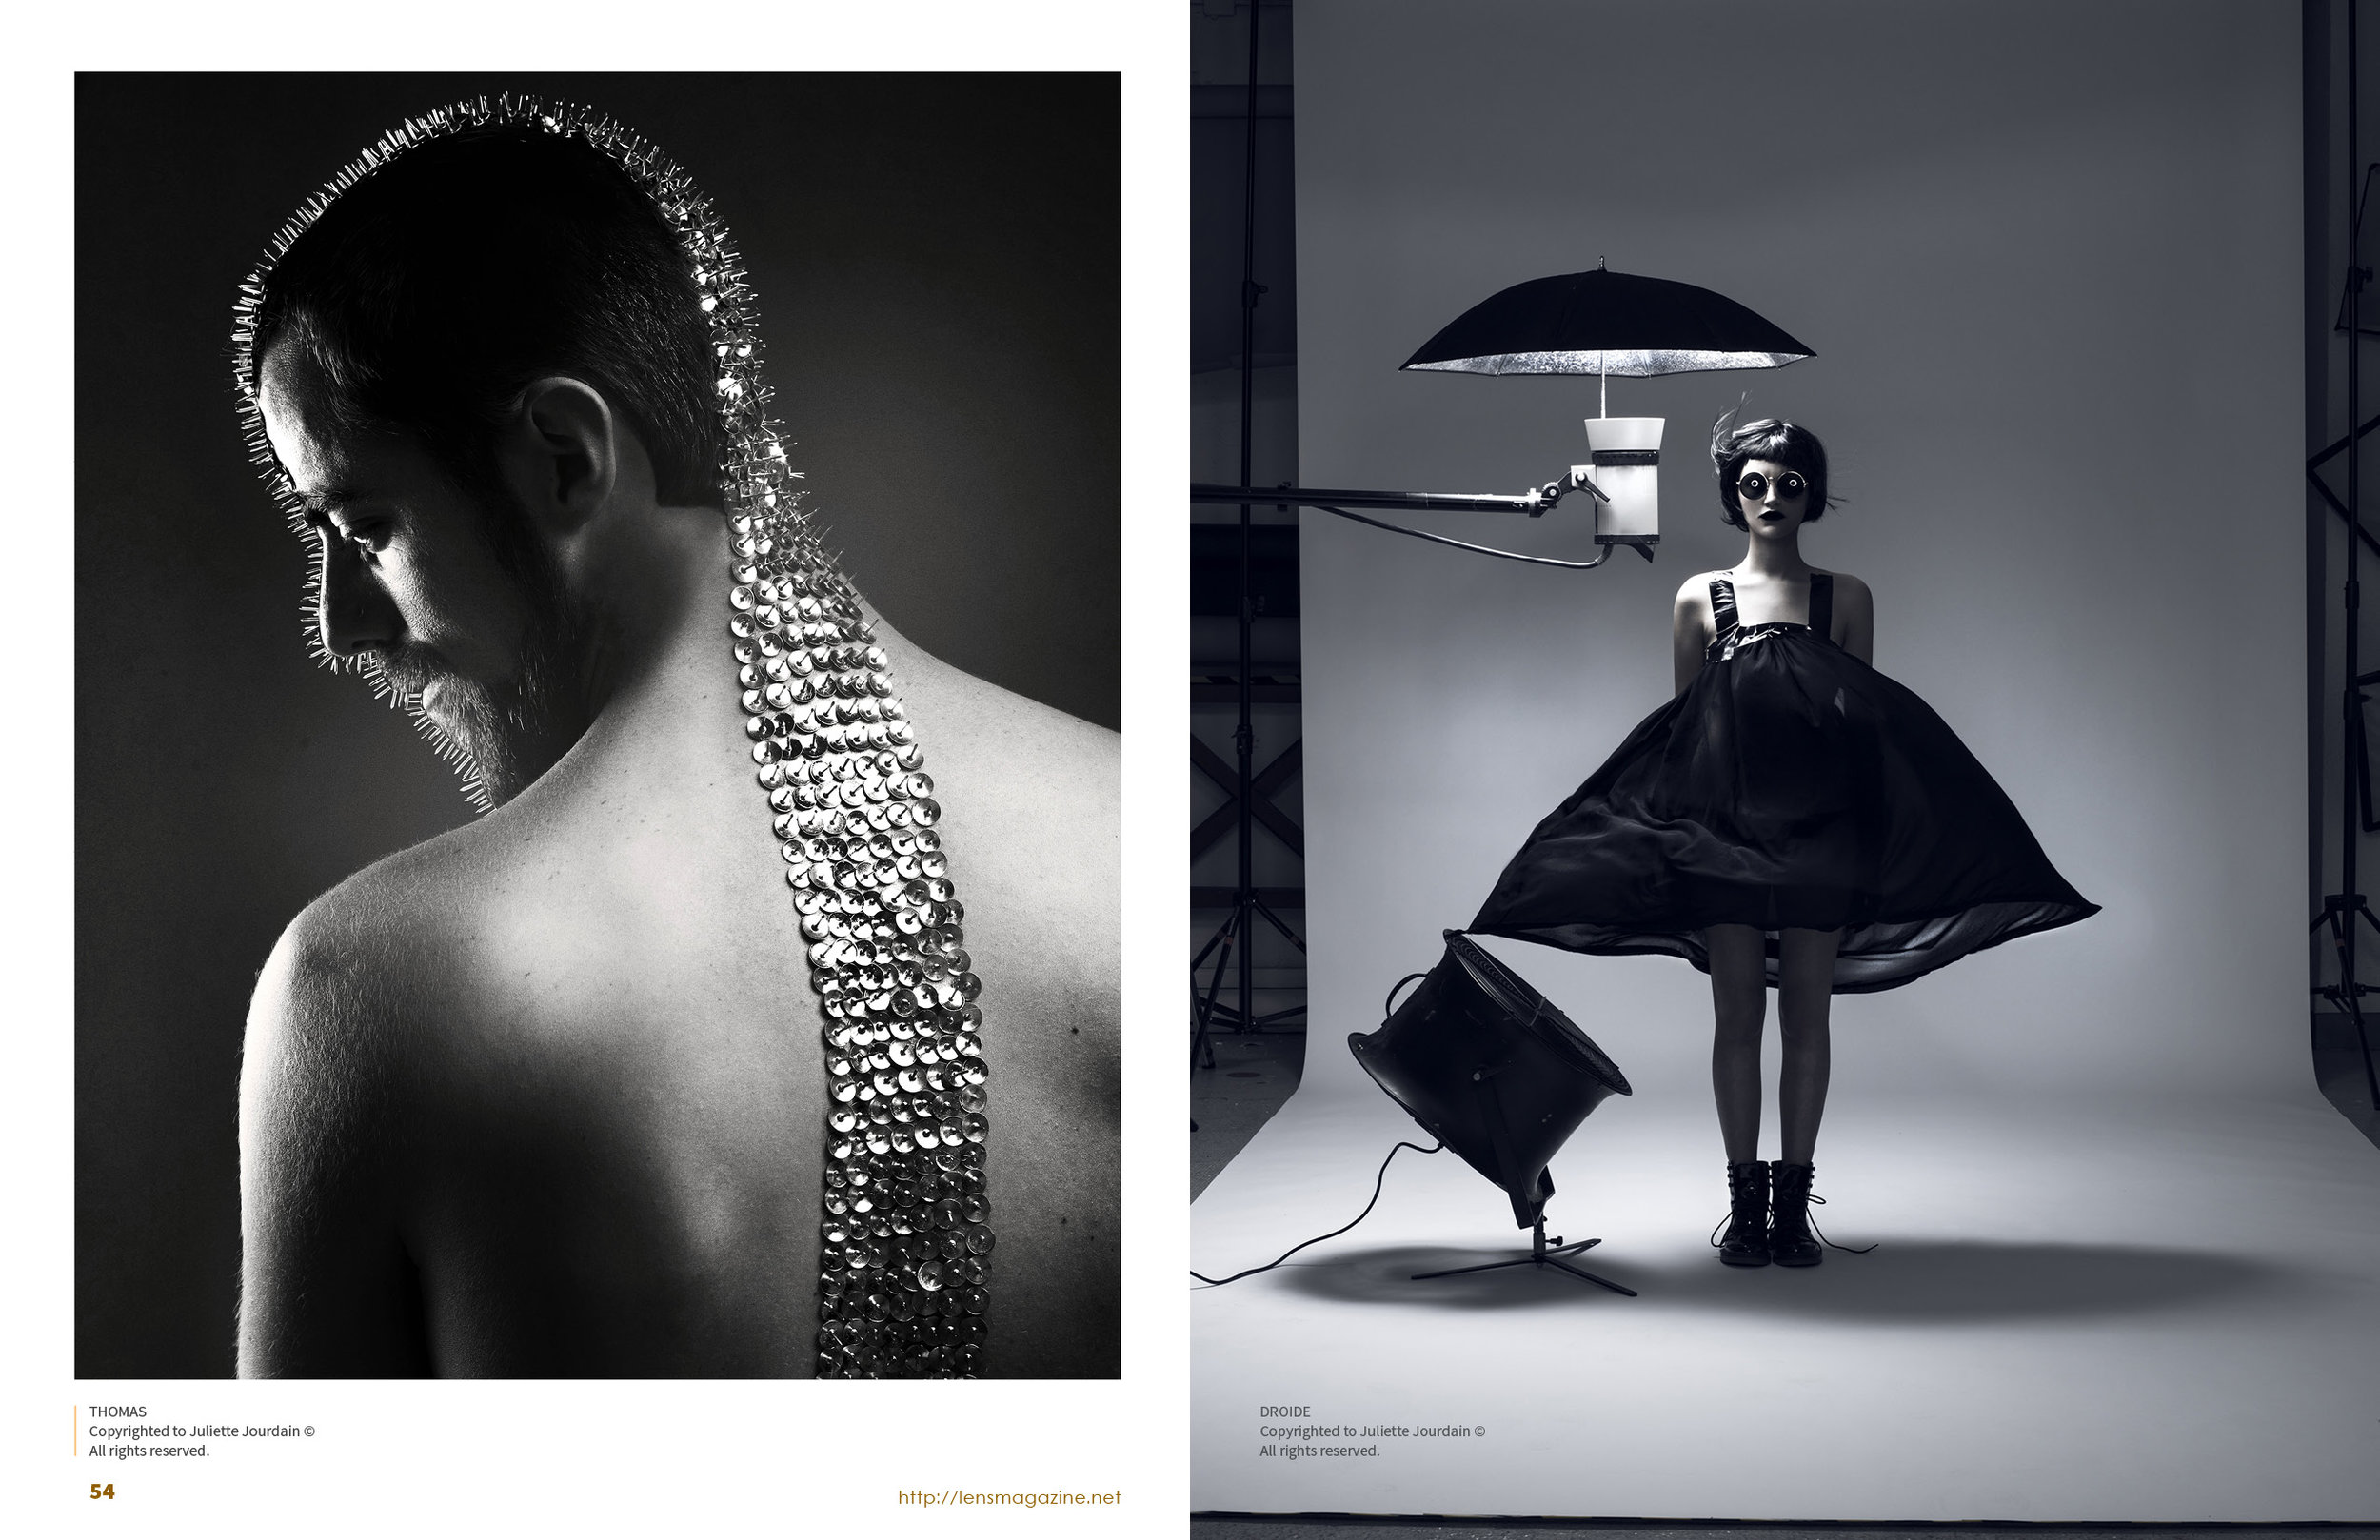 Lens_magazine_issue5_valerie_paumelle_agent_juliette_jourdain_photographer_portrait_artwork (10).jpg